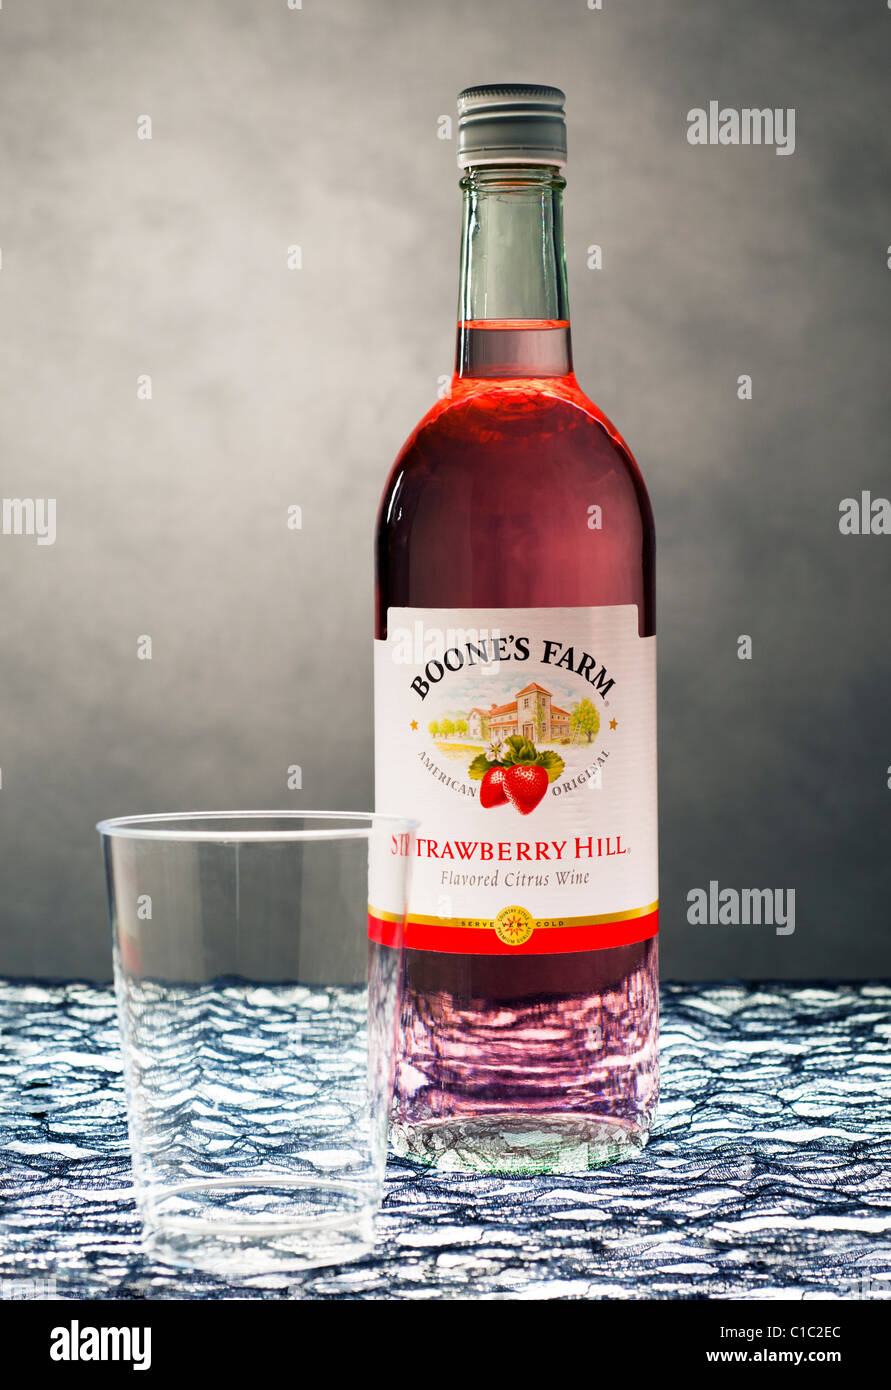 Boones Farm Strawberry Hill Wine bottle and a plastic cup - Stock Image